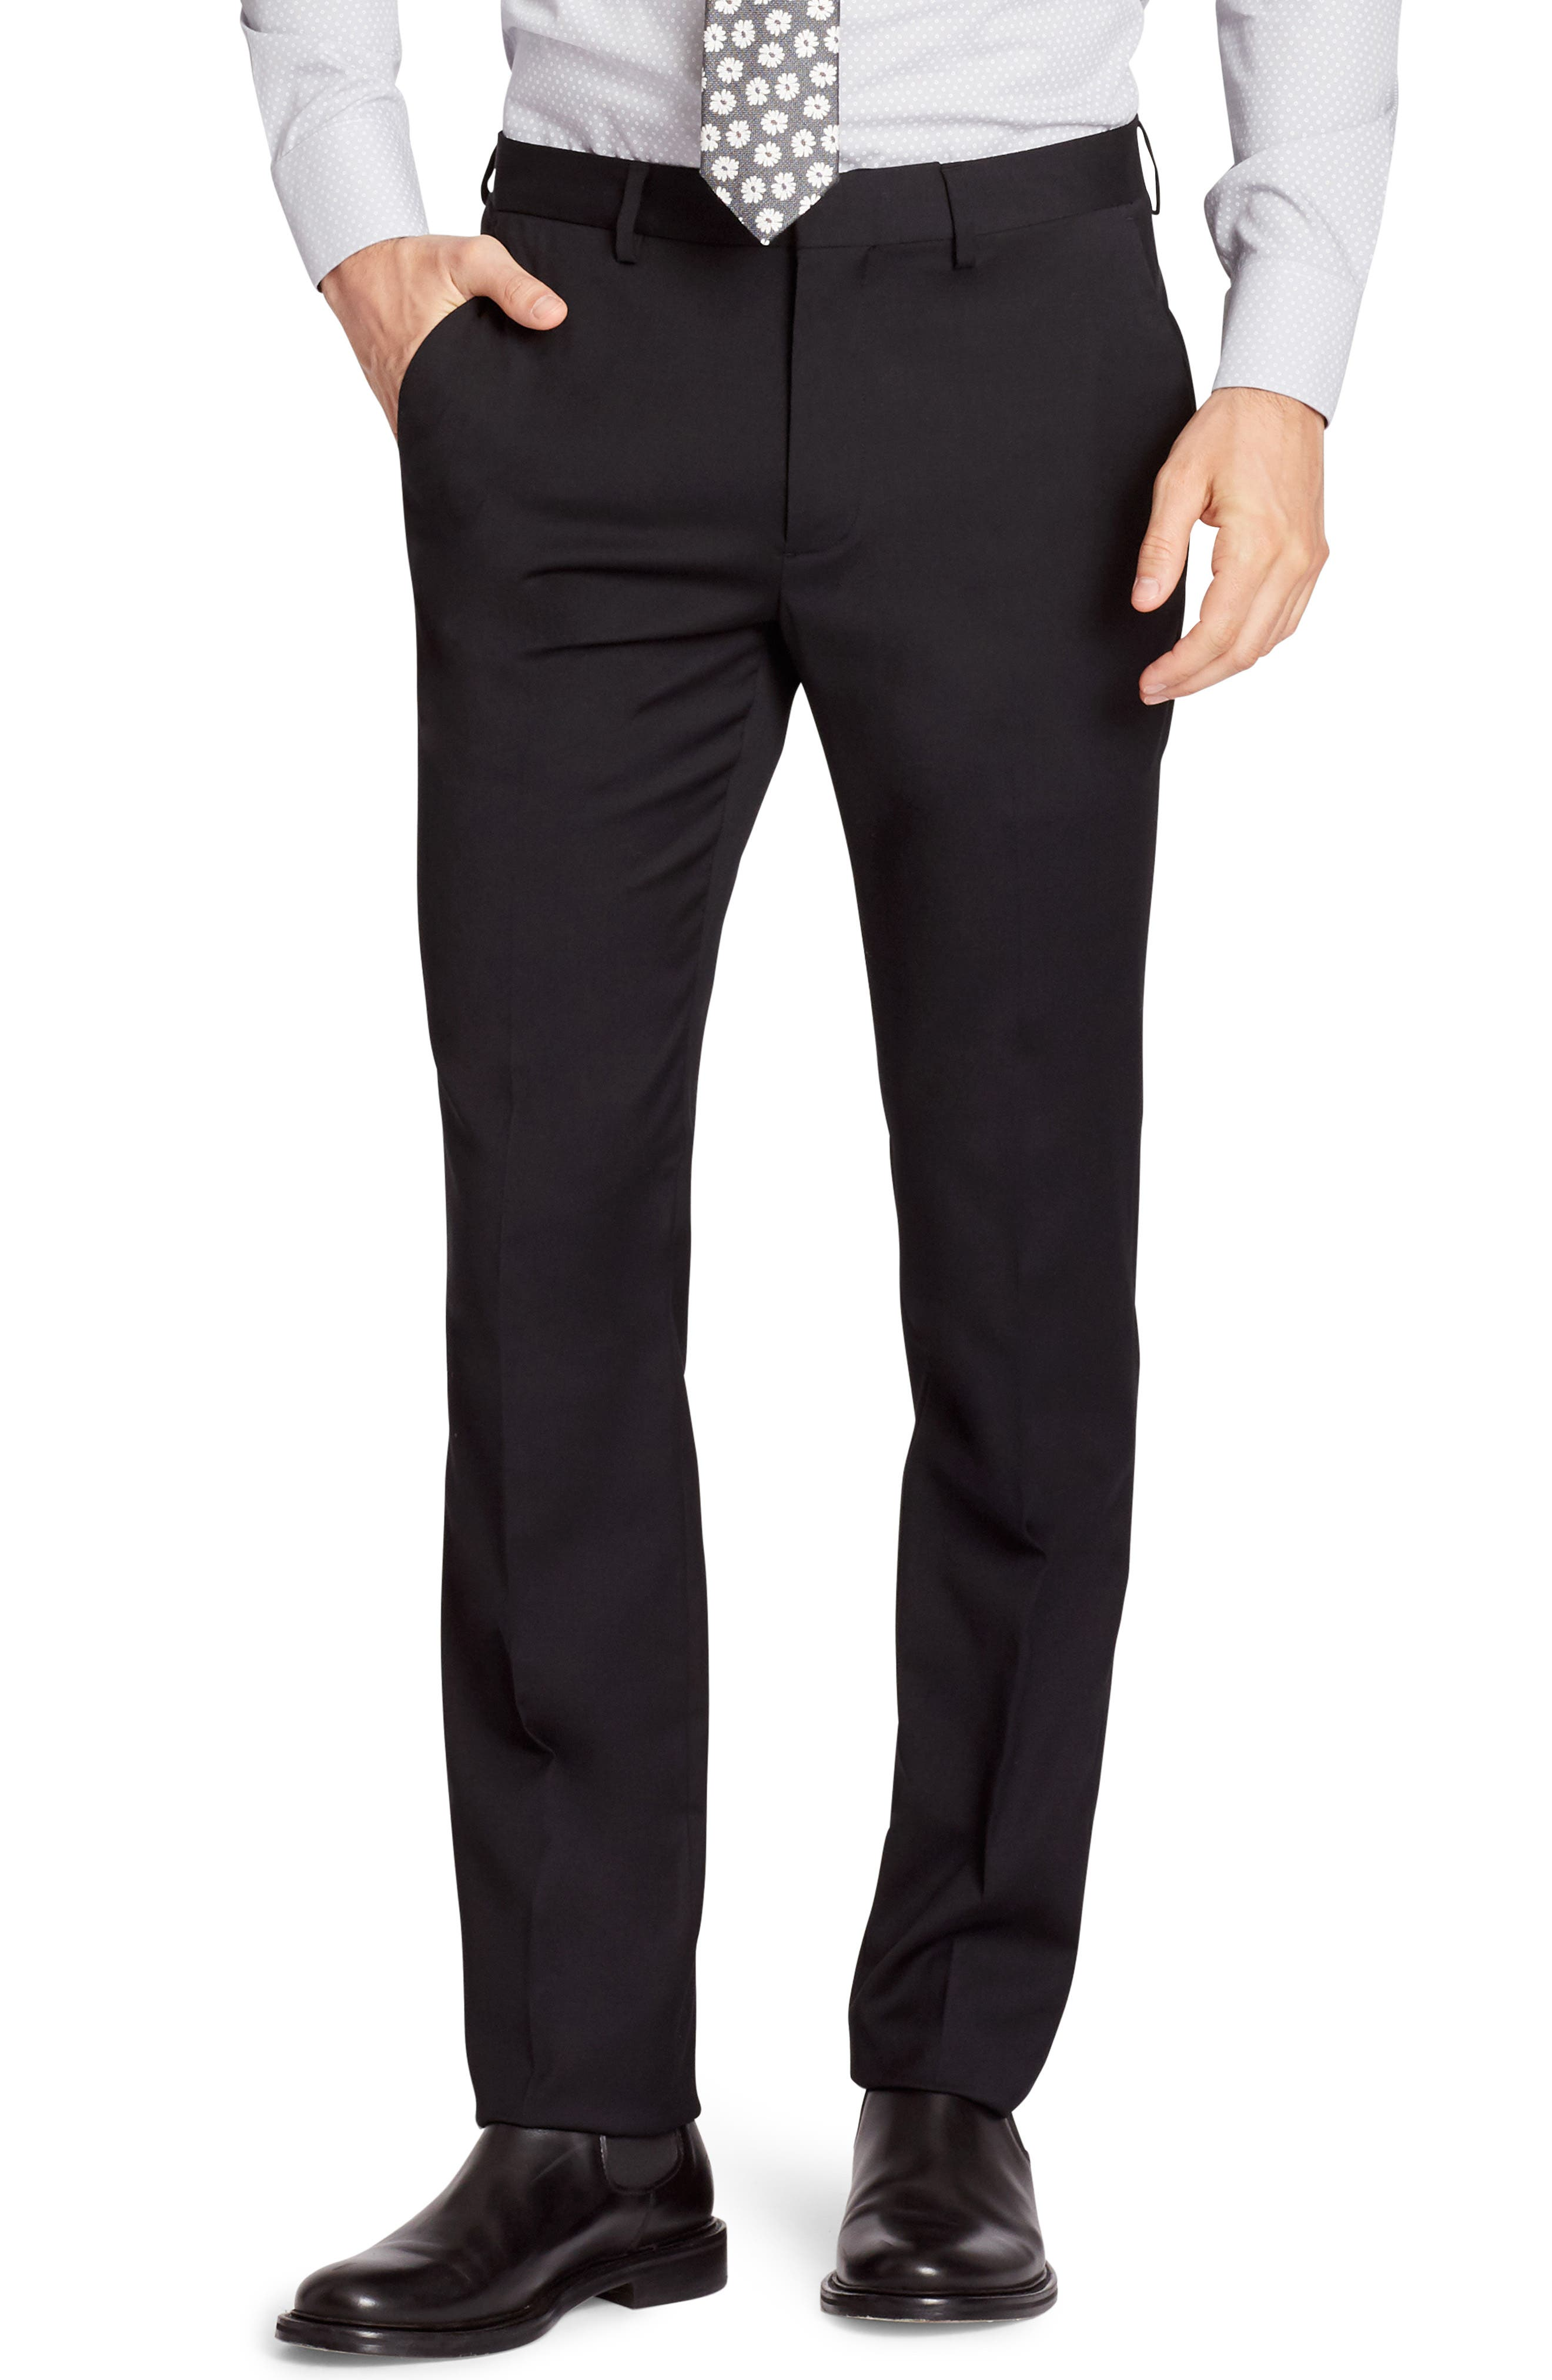 Jetsetter Flat Front Stretch Wool Trousers,                         Main,                         color, Black